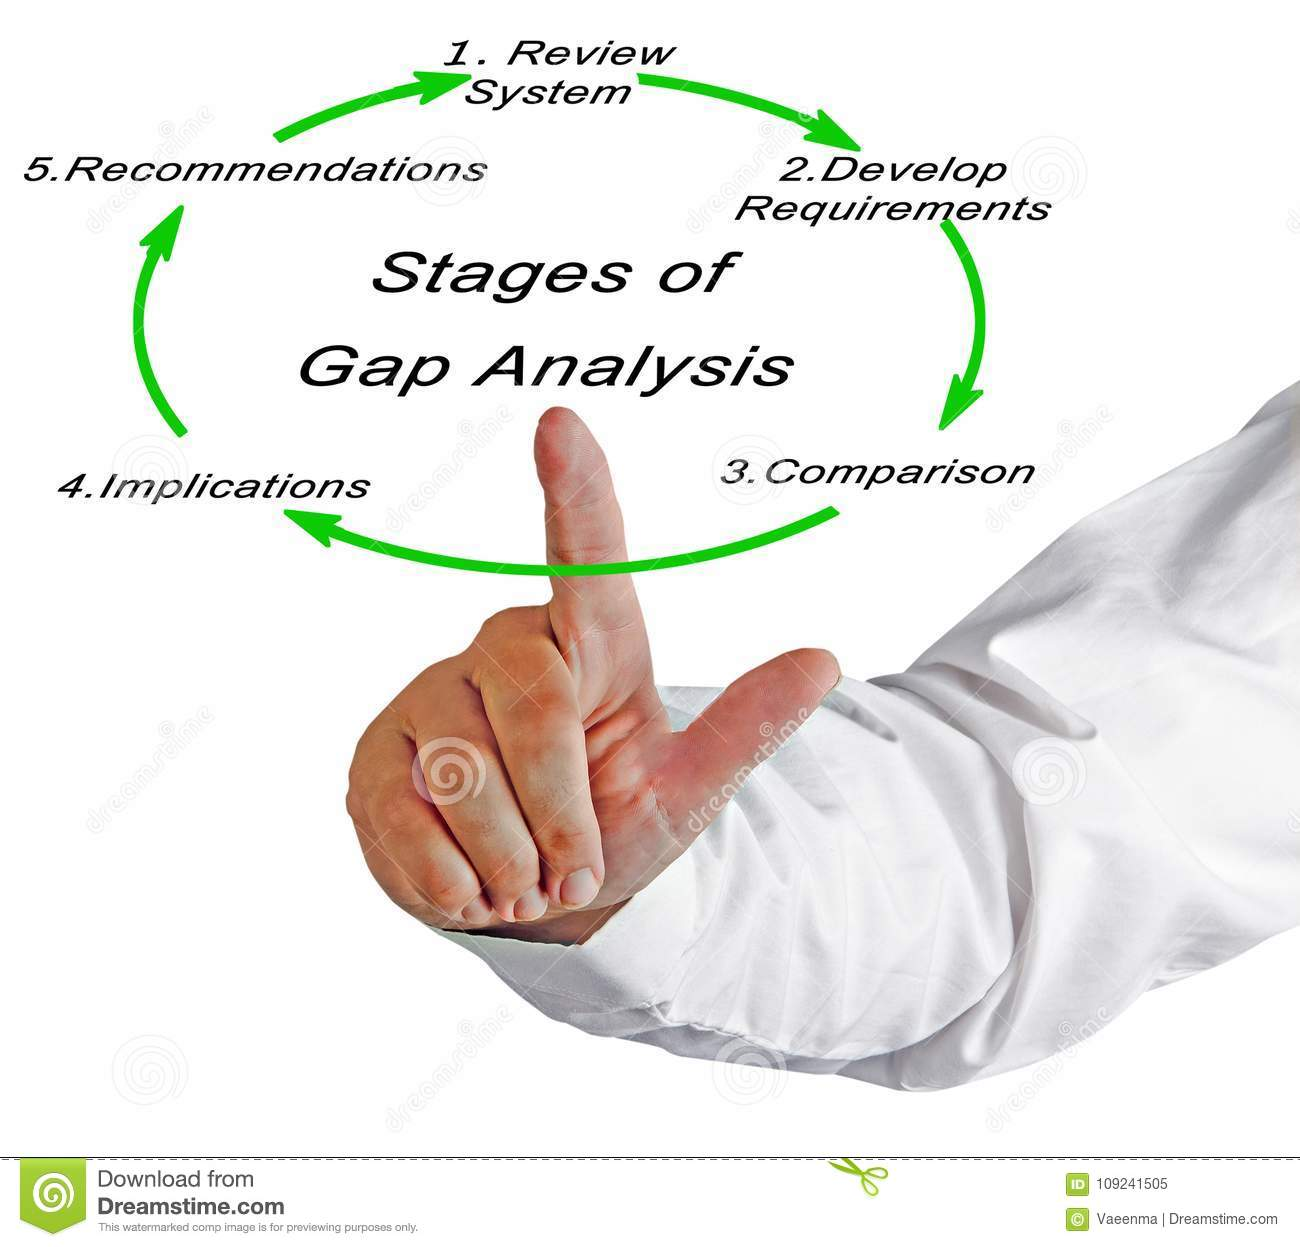 Download Stages Of Gap Analysis Stock Image. Image Of Lecture - 109241505